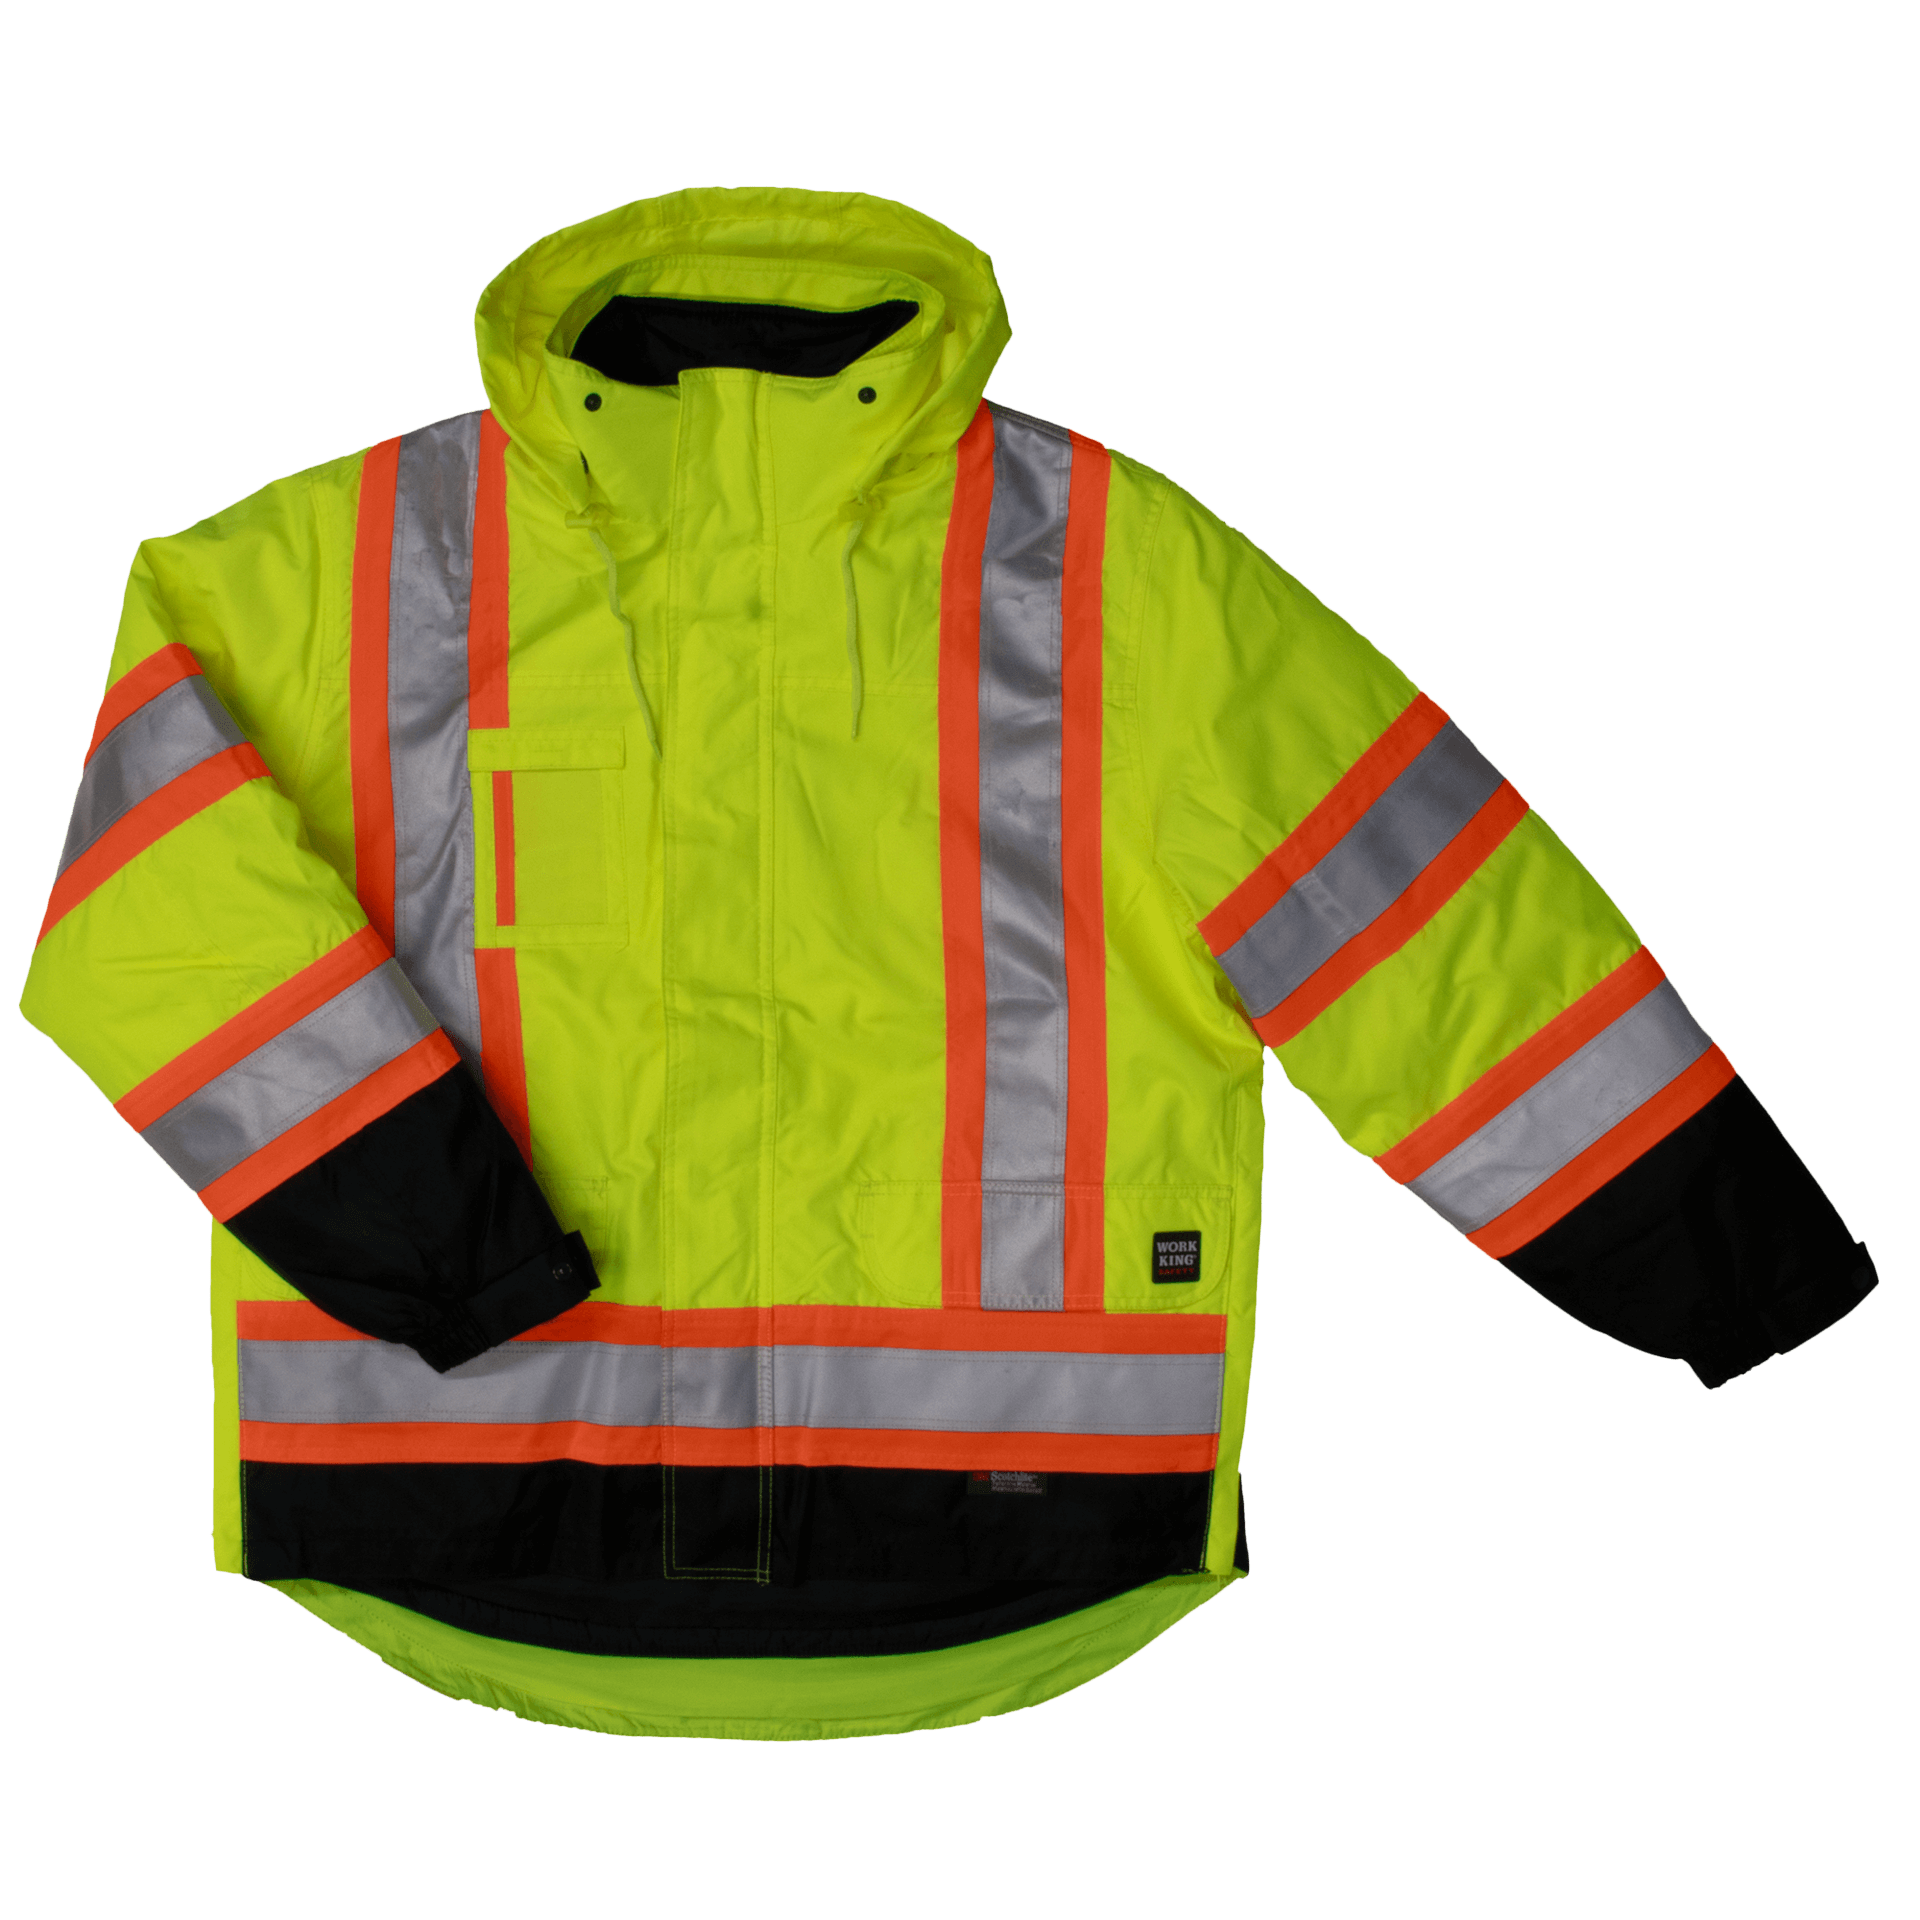 High Visibility Tough Duck 5-in-1 Safety Jacket S426